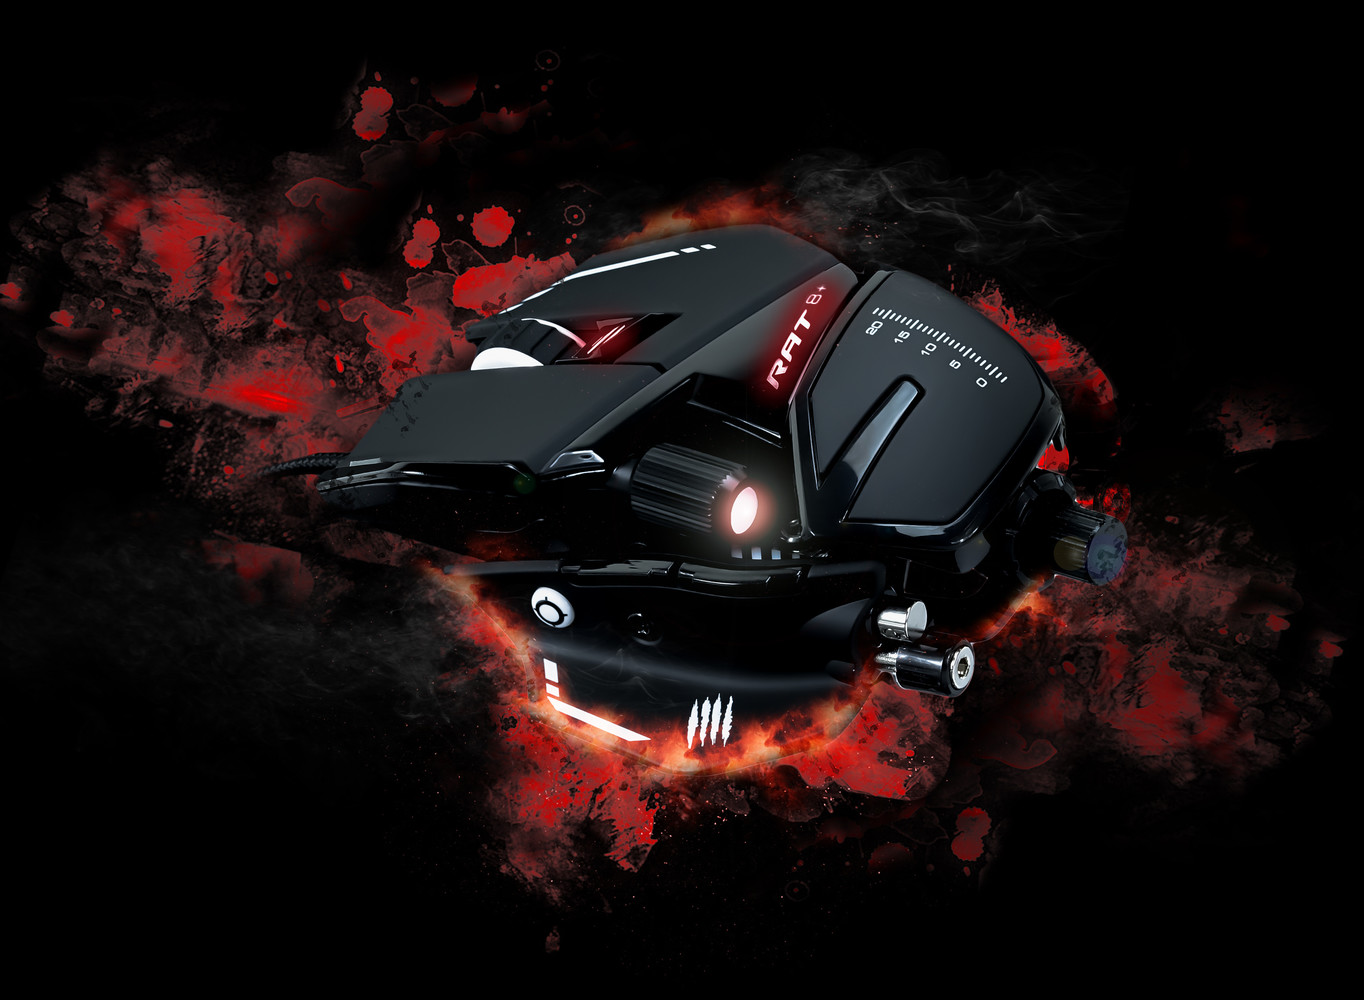 6a2f0311a11 Mad Catz Announces All-New Range of Products, Including Iconic R.A.T. Gaming  Mice